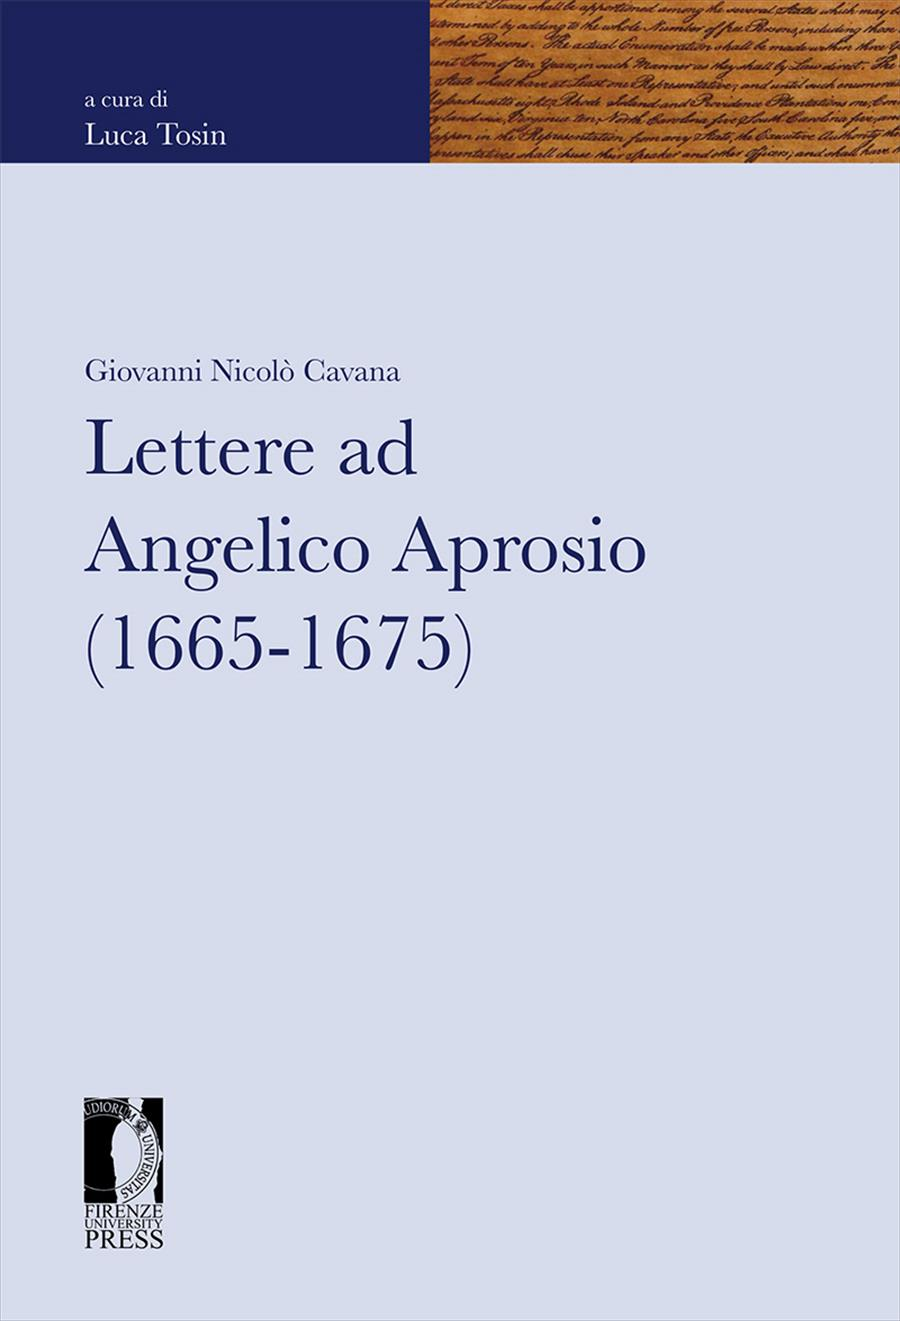 Lettere ad Angelico Aprosio (1665-1675)